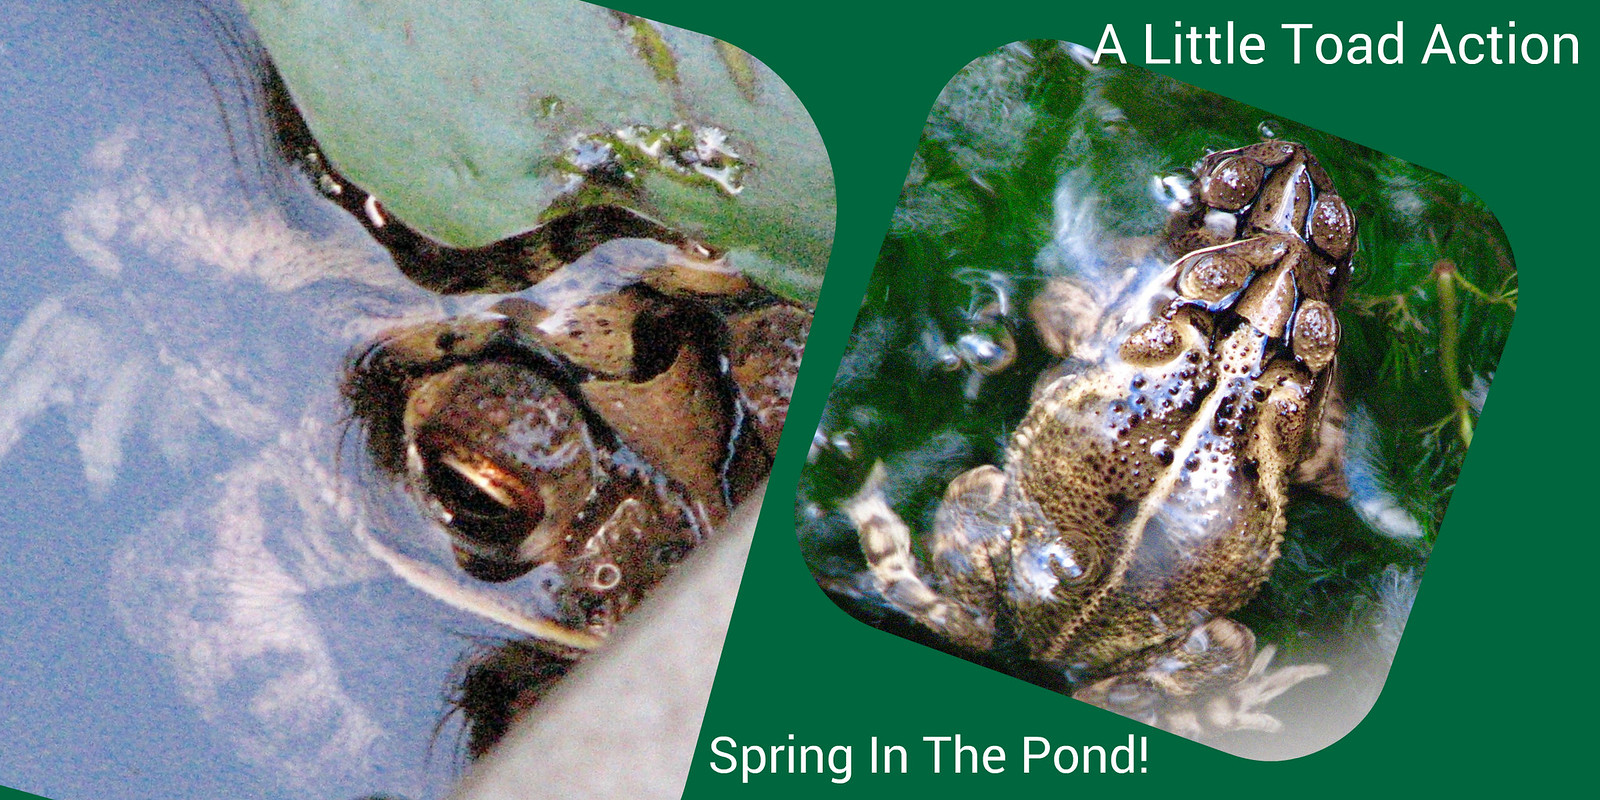 Spring In The Pond